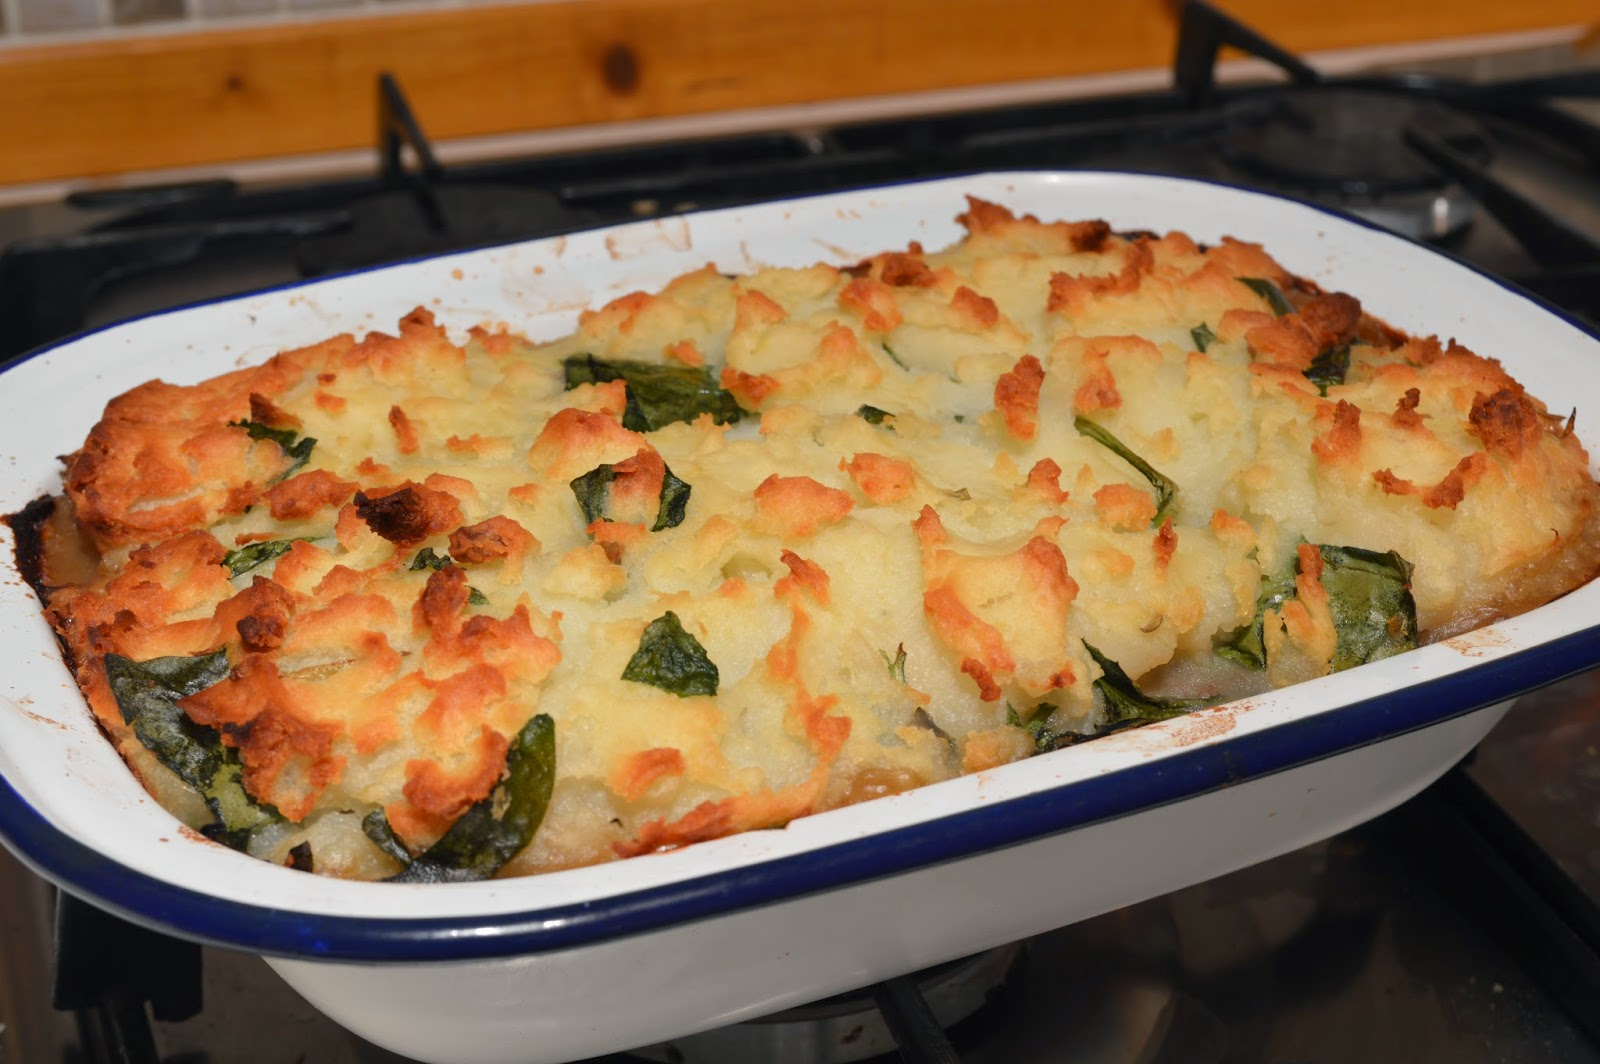 Lentil and Spinach Pie, Nigel Slater, Gingey Bites